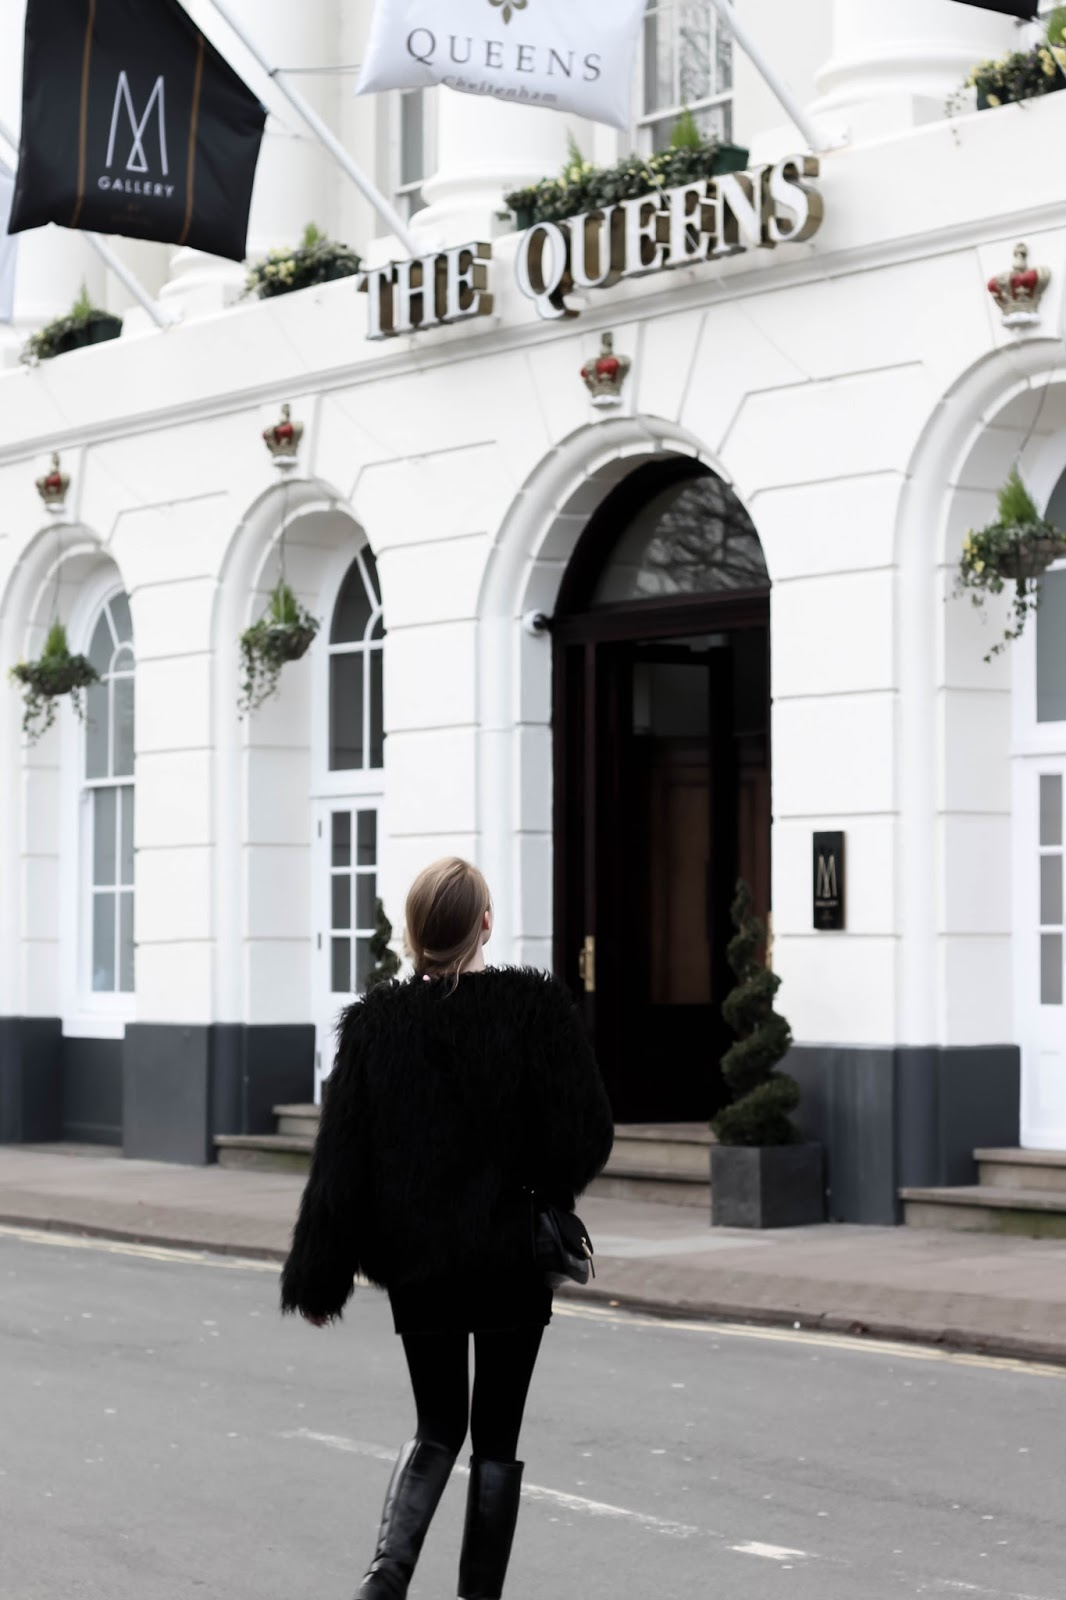 The Queen's Hotel Cheltenham Travel Blog Guide